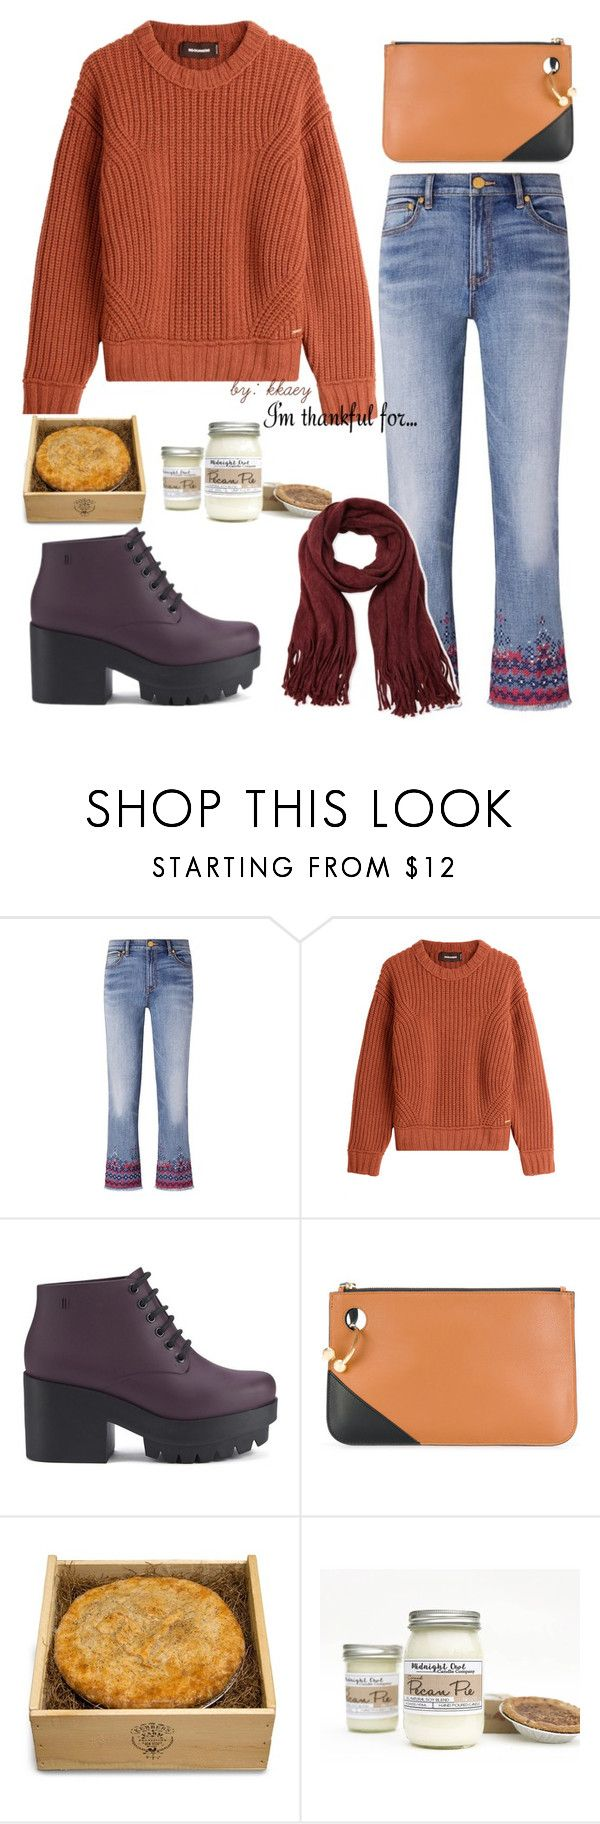 """""""Thankful #1"""" by kkaey ❤ liked on Polyvore featuring Tory Burch, Dsquared2, Melissa, J.W. Anderson, Kerber's Farm and Steve Madden"""